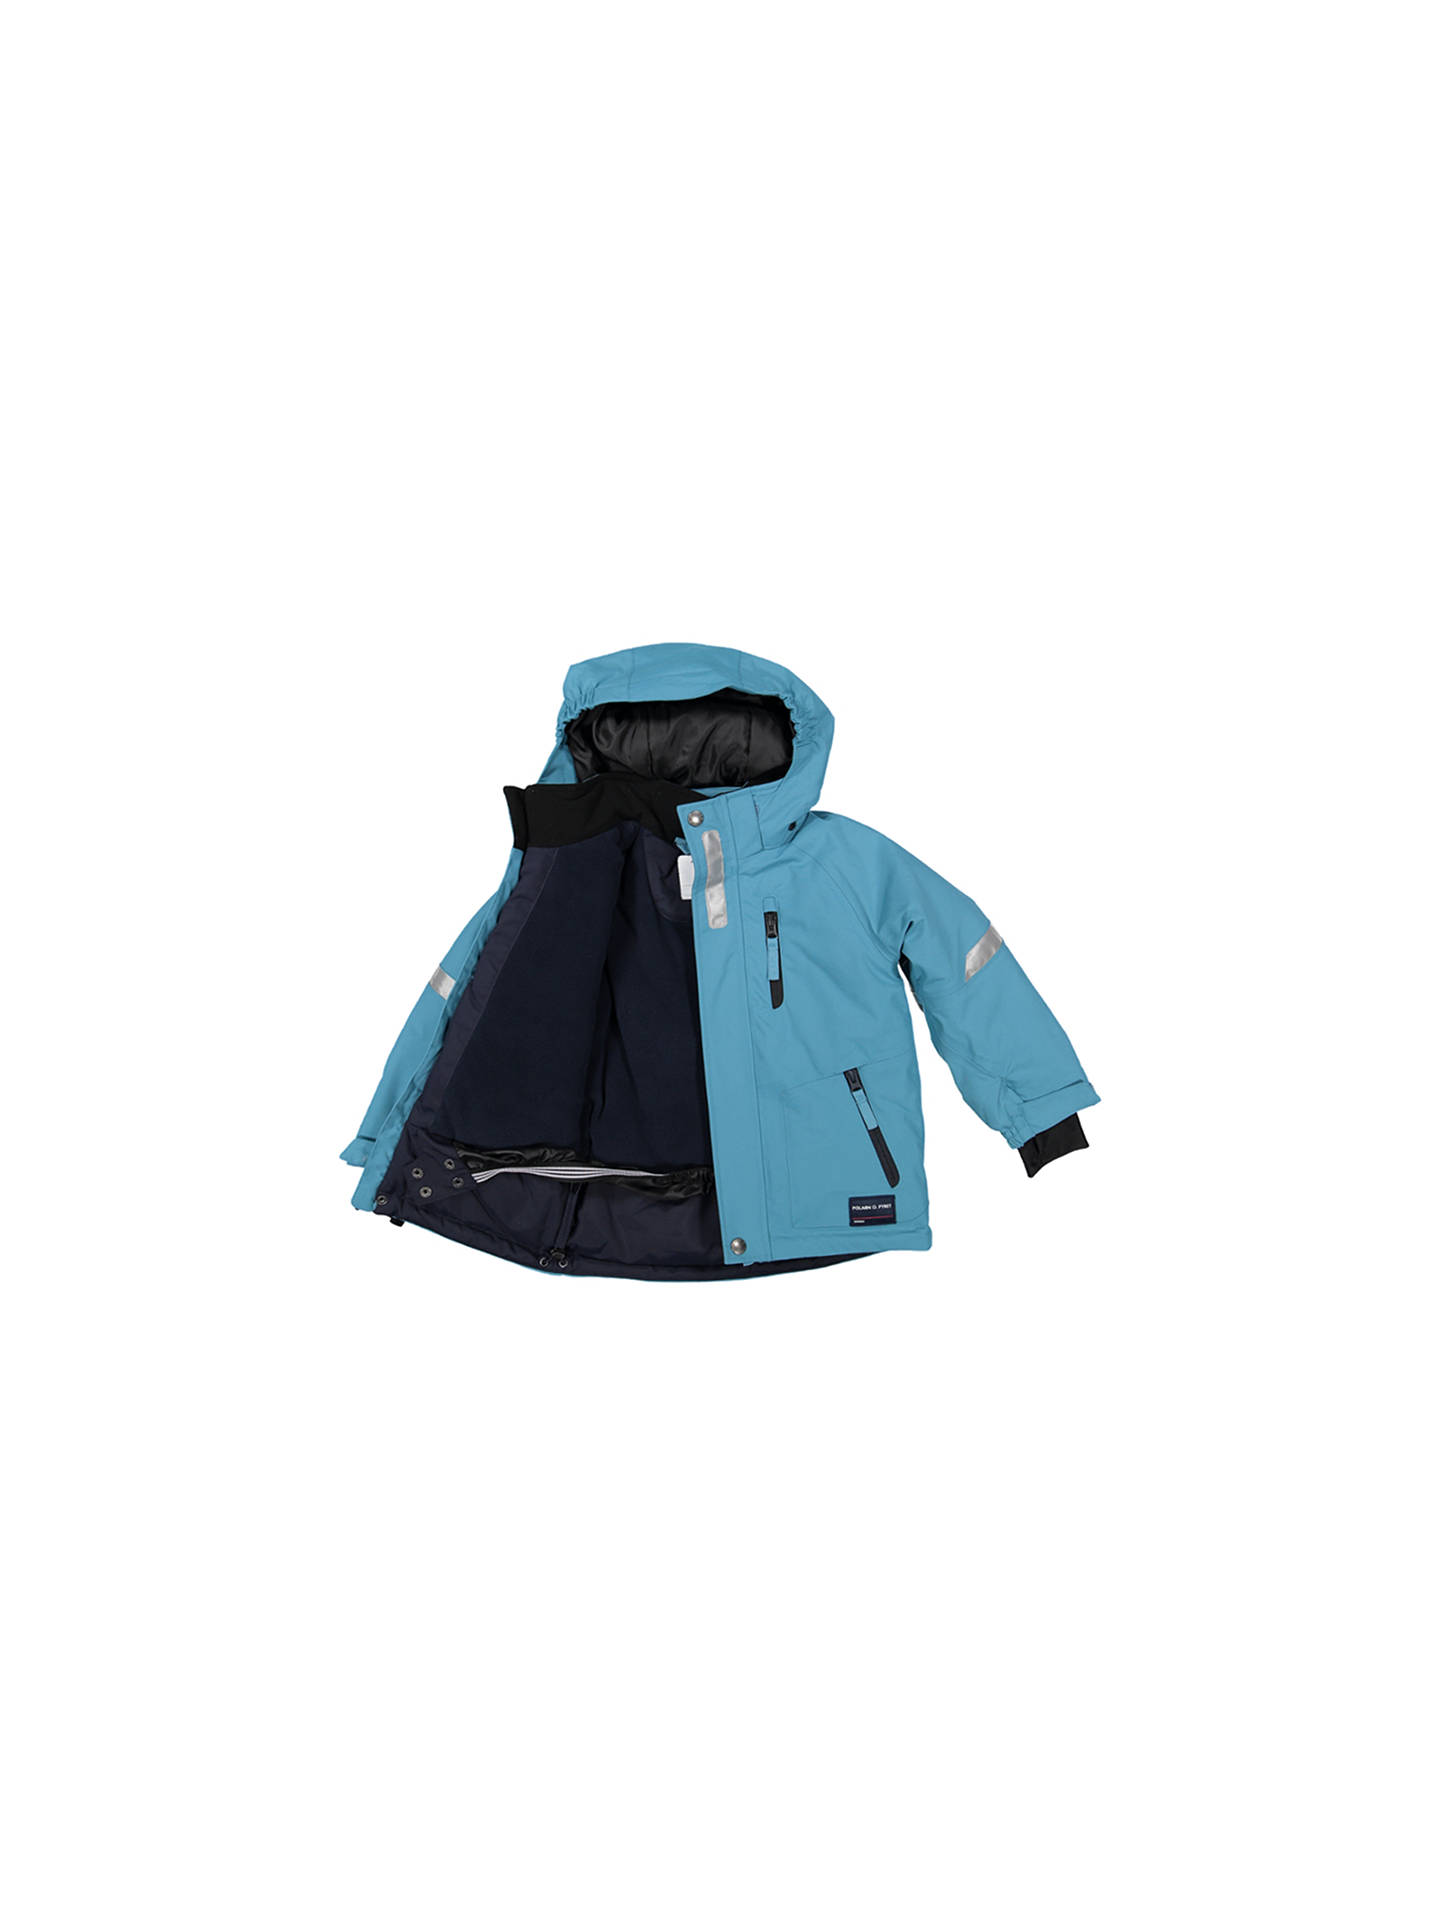 00f6a8f6f Polarn O. Pyret Children s Winter Coat at John Lewis   Partners